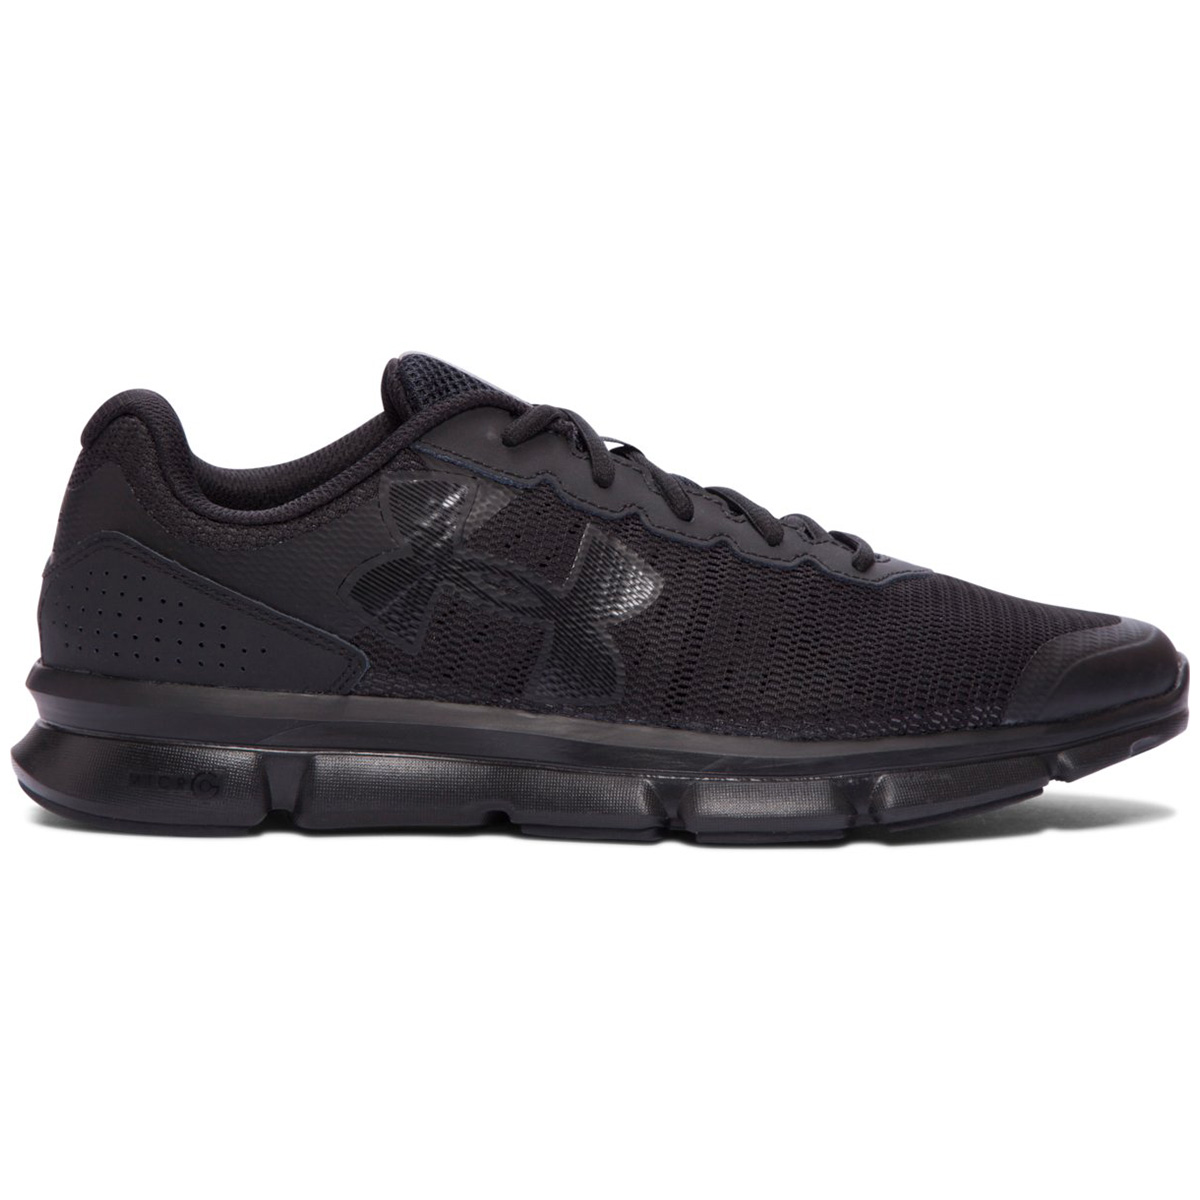 Mens Under Armour Training Shoes